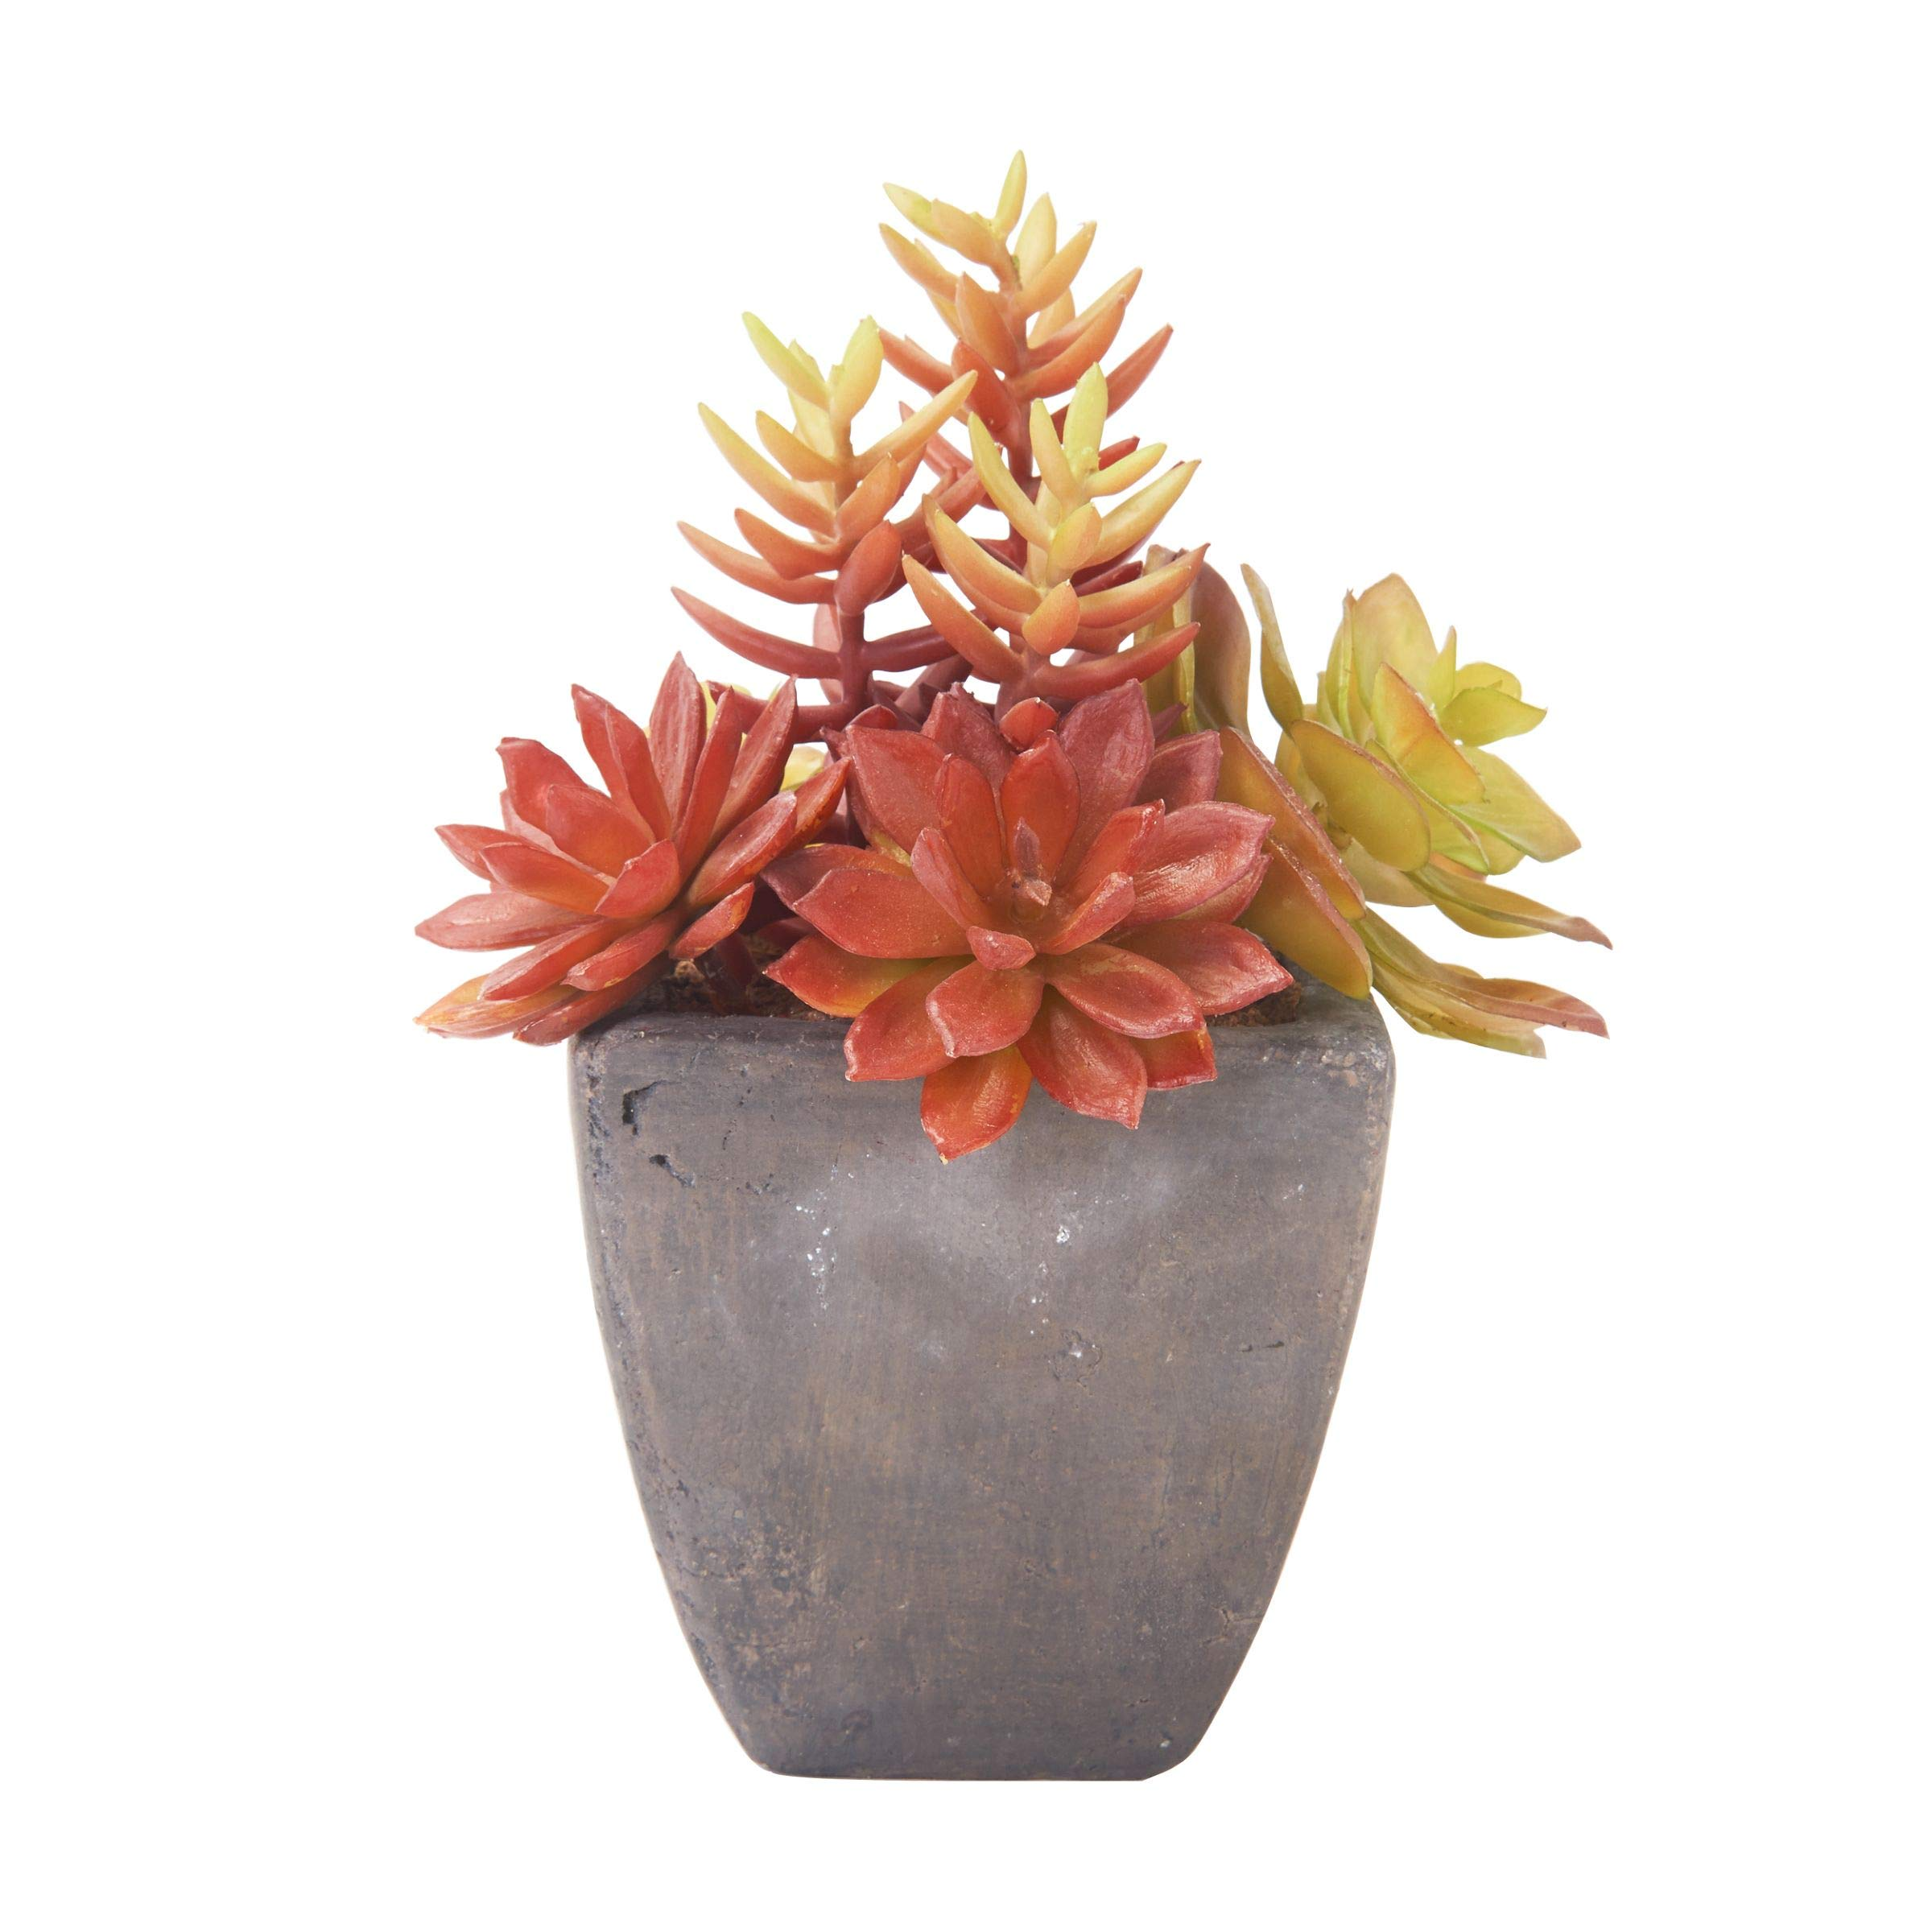 Elements Artifical Succulent Plant, 7.5-inch, Assorted by Elements